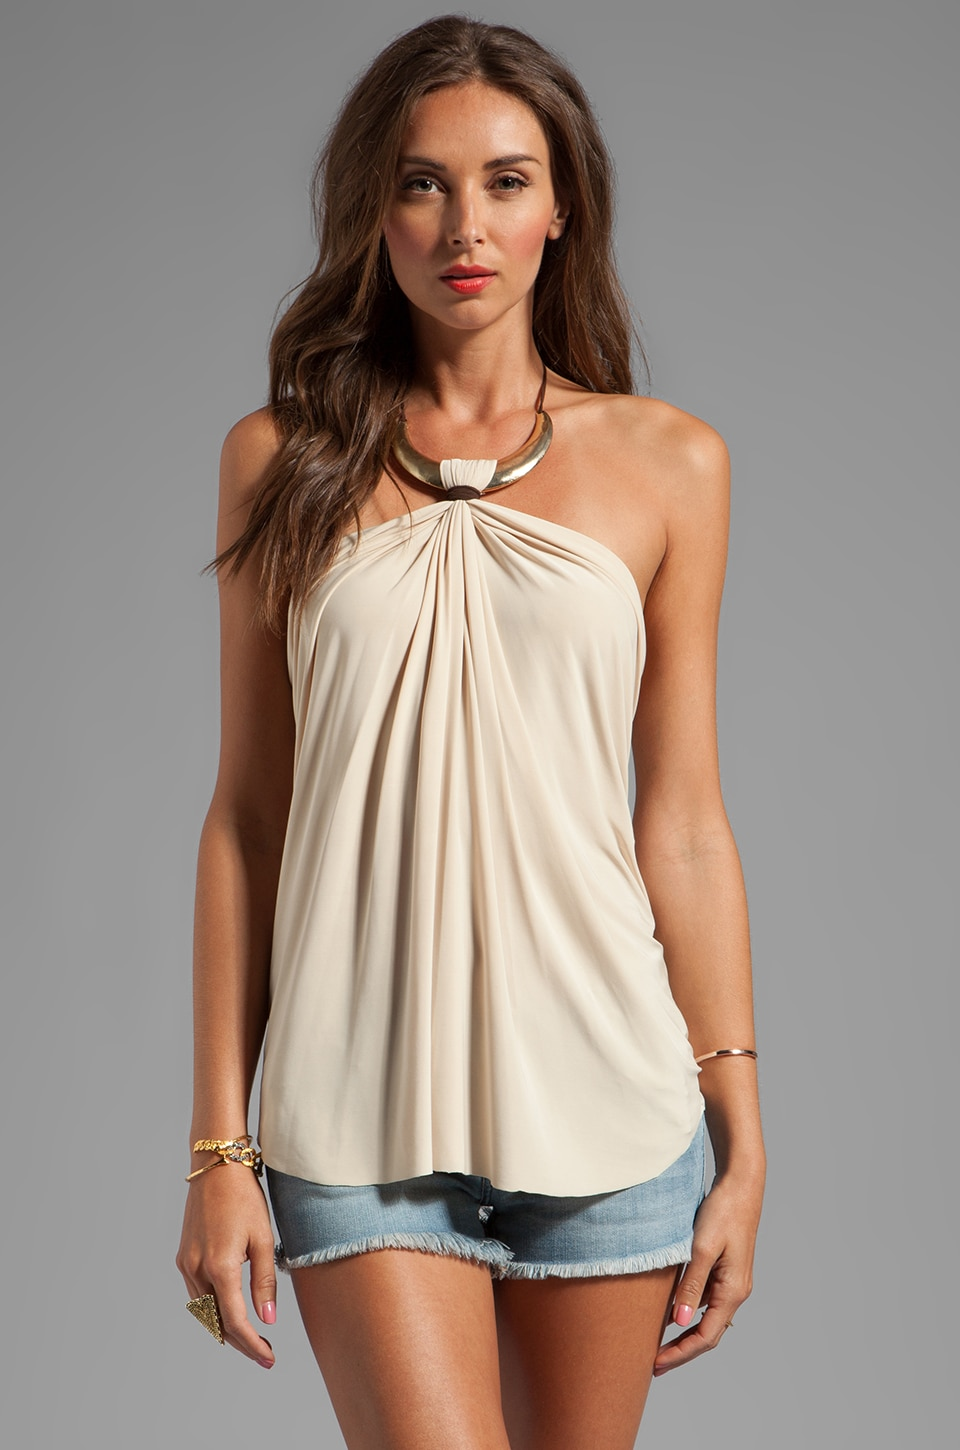 T-Bags LosAngeles Necklace Tank in Cream